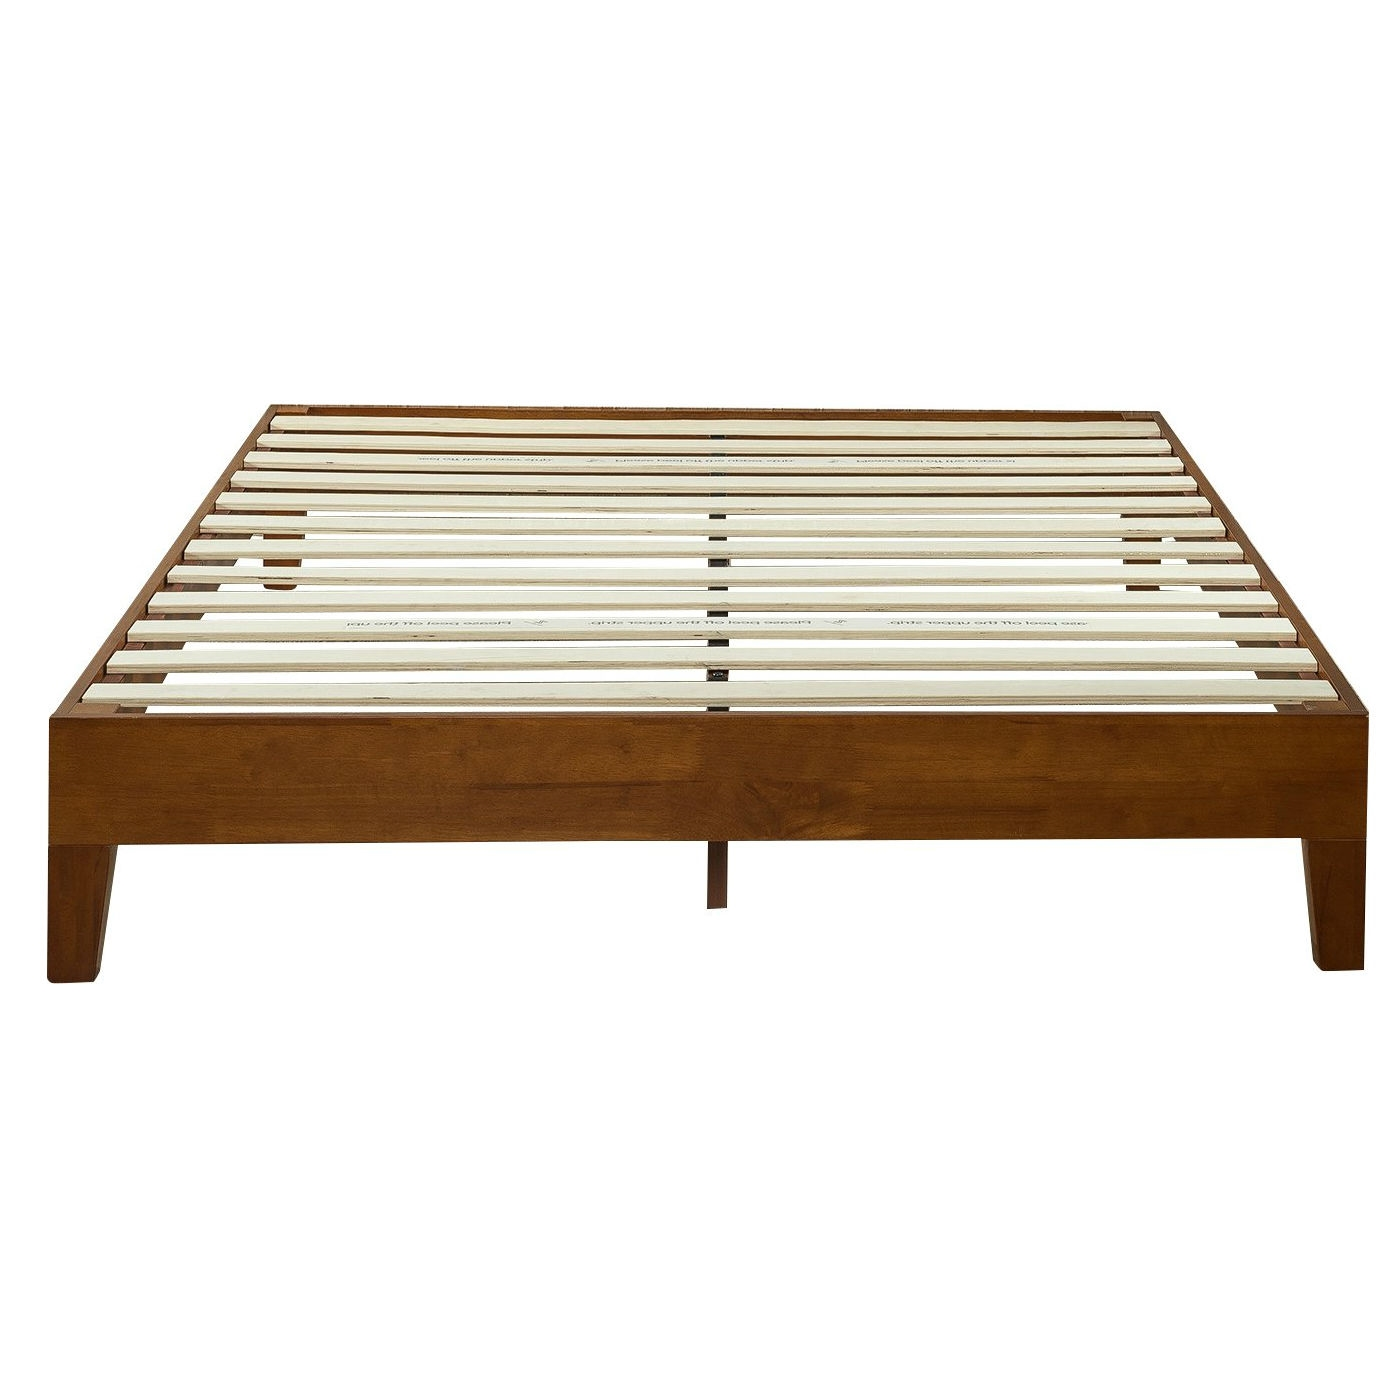 Full Size Low Profile Platform Bed Frame In Cherry Wood Finish Fastfurnishings Com